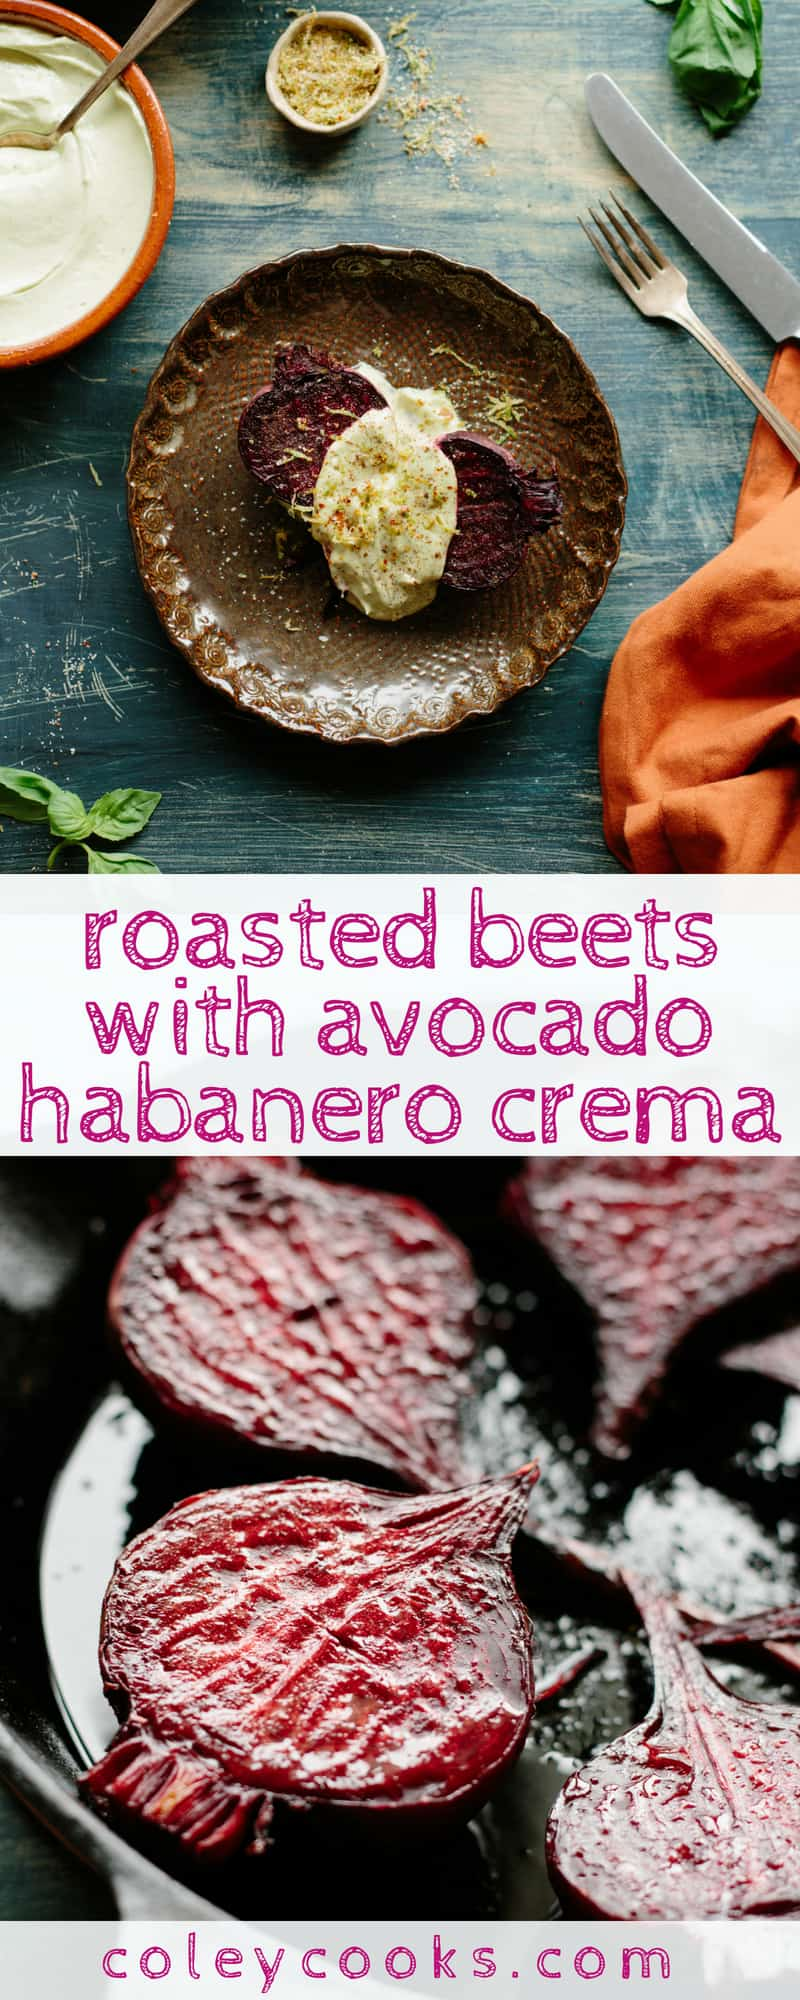 ROASTED BEETS with AVOCADO HABANERO CREMA | From Hartwood in Tulum, Mexico! This easy beet recipe is outrageously delicious. A wonderful side for grilled dinners. #recipe #sides #Tulum #hartwood #beets | ColeyCooks.com